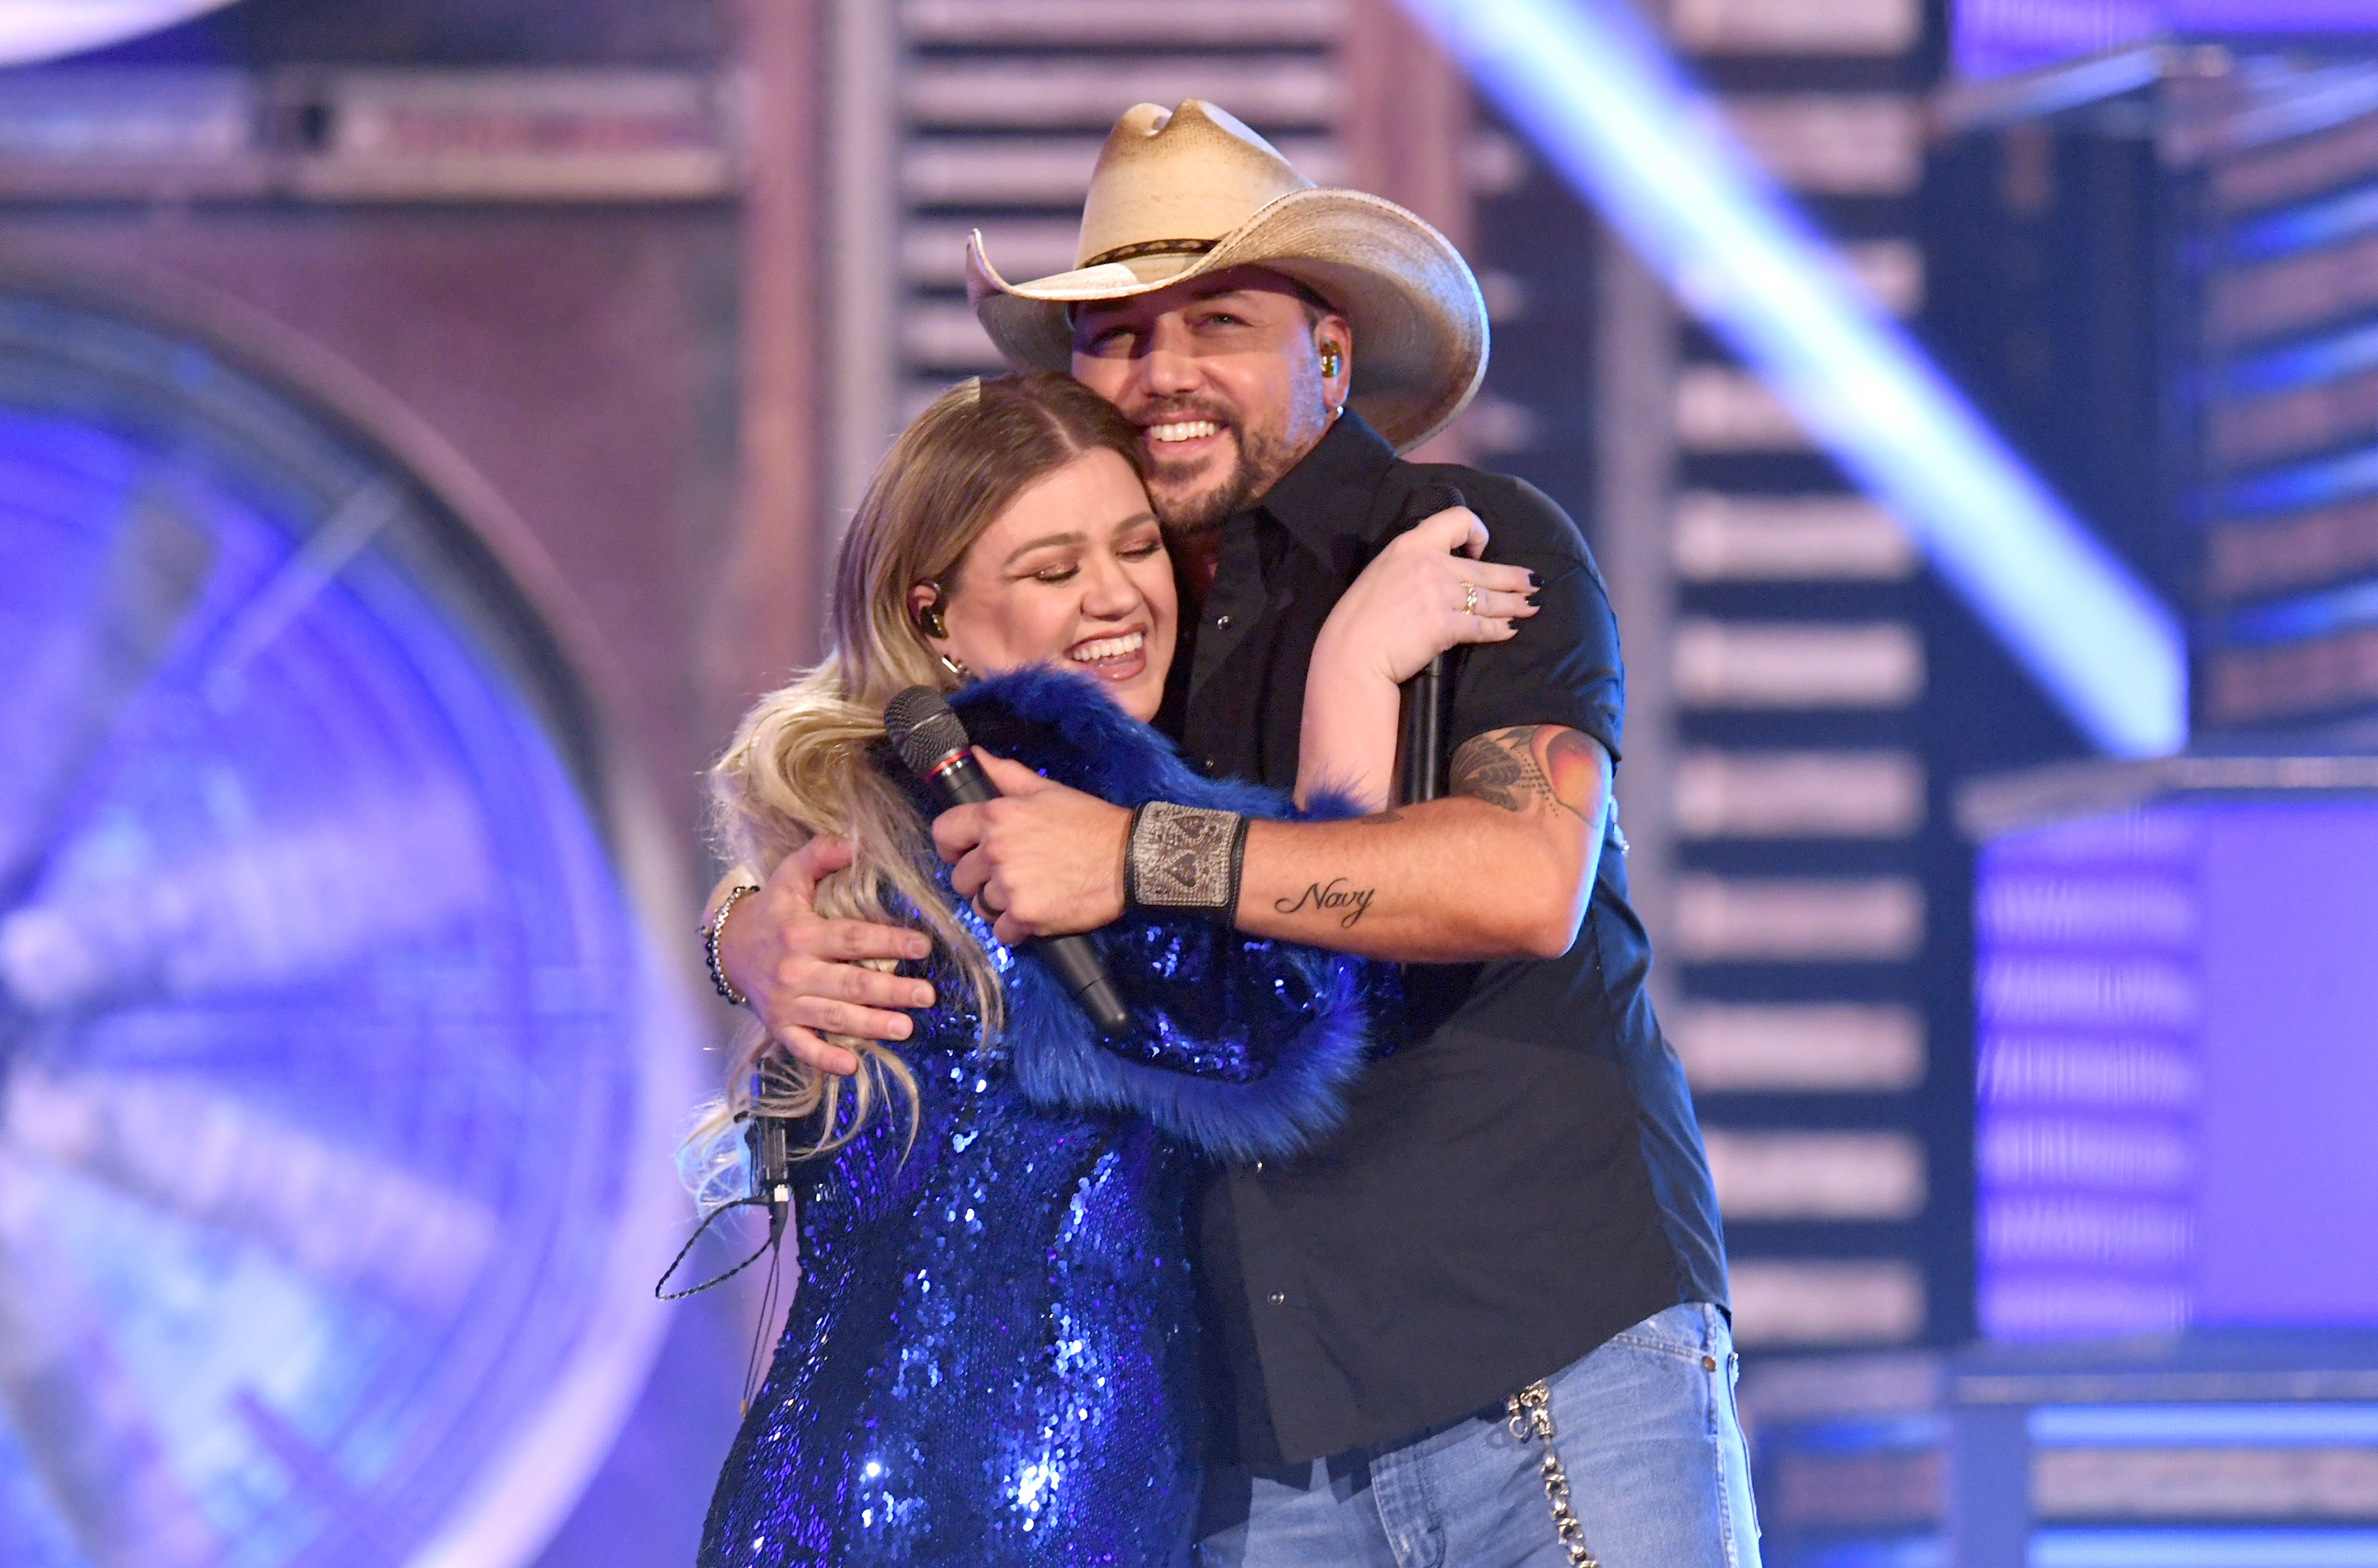 Kelly Clarkson and Jason Aldean perform onstage during the 54th Academy Of Country Music Awards in Las Vegas on April 7, 2019.